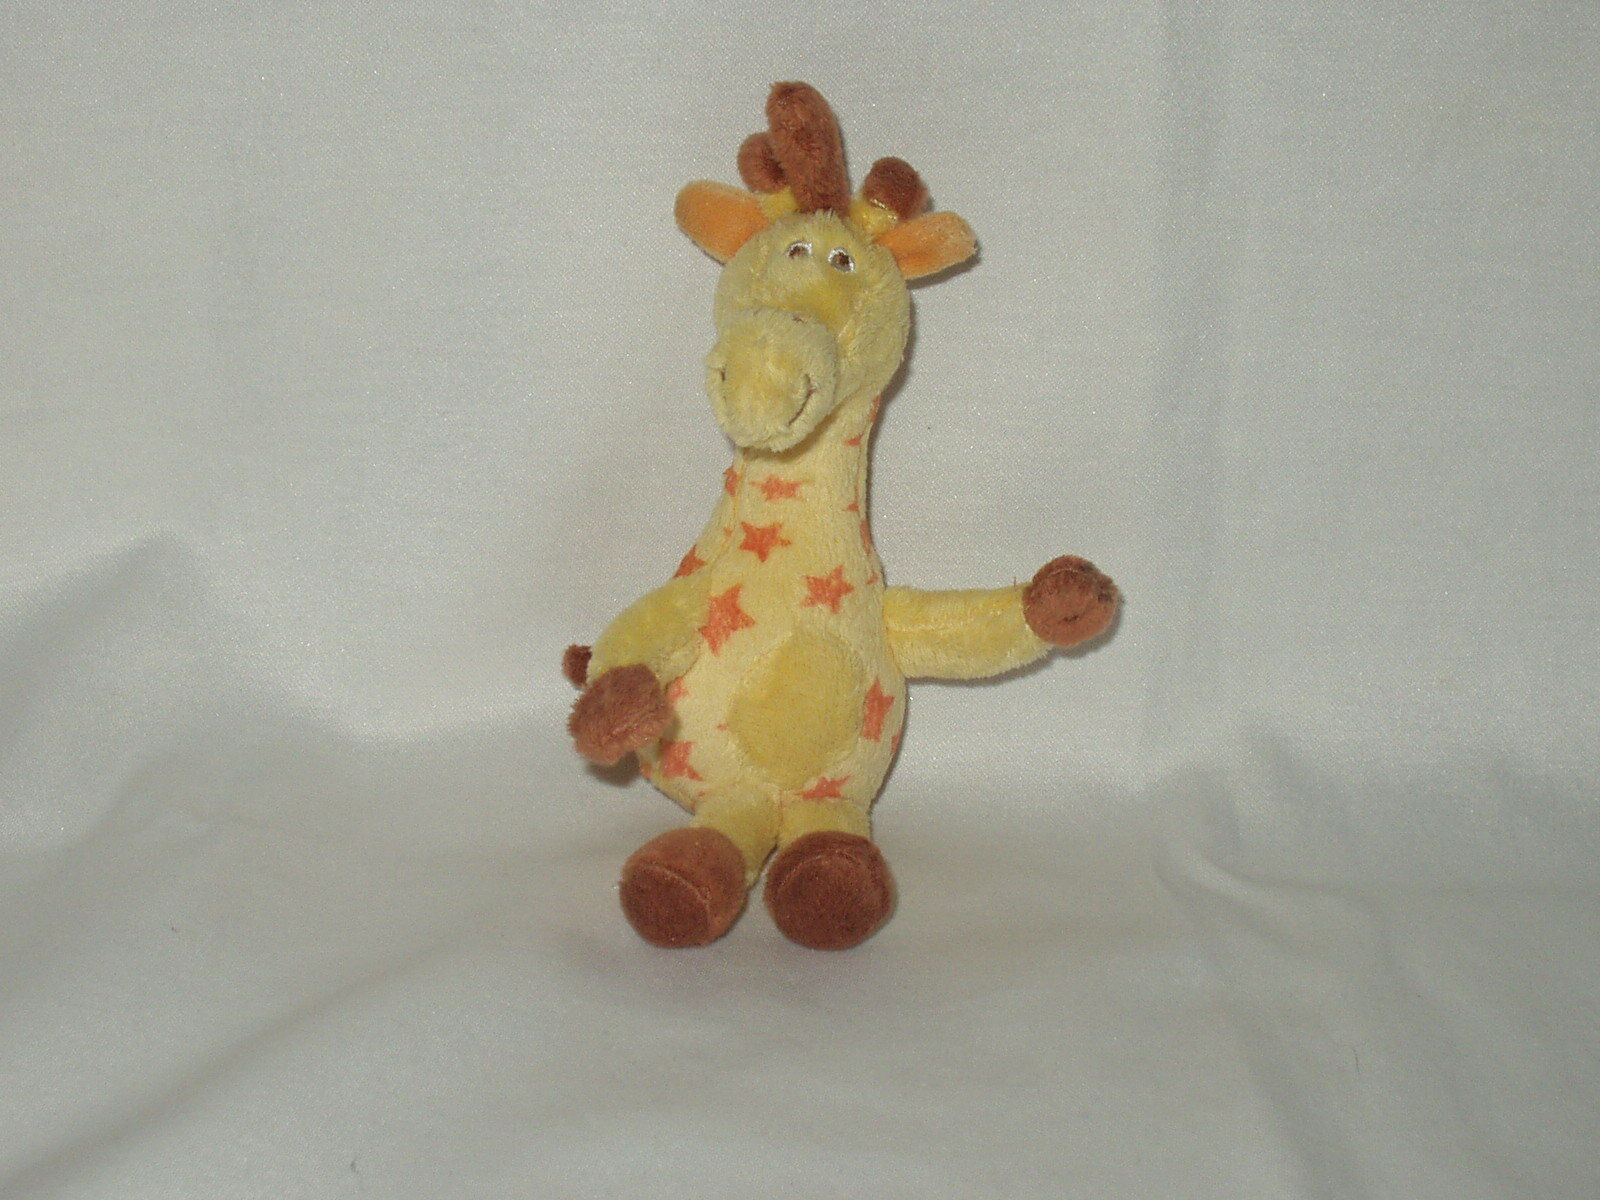 TOYS R US 7.5  GEOFFREY THE GIRAFFE mascot plush stuffed figure toy dated 2012